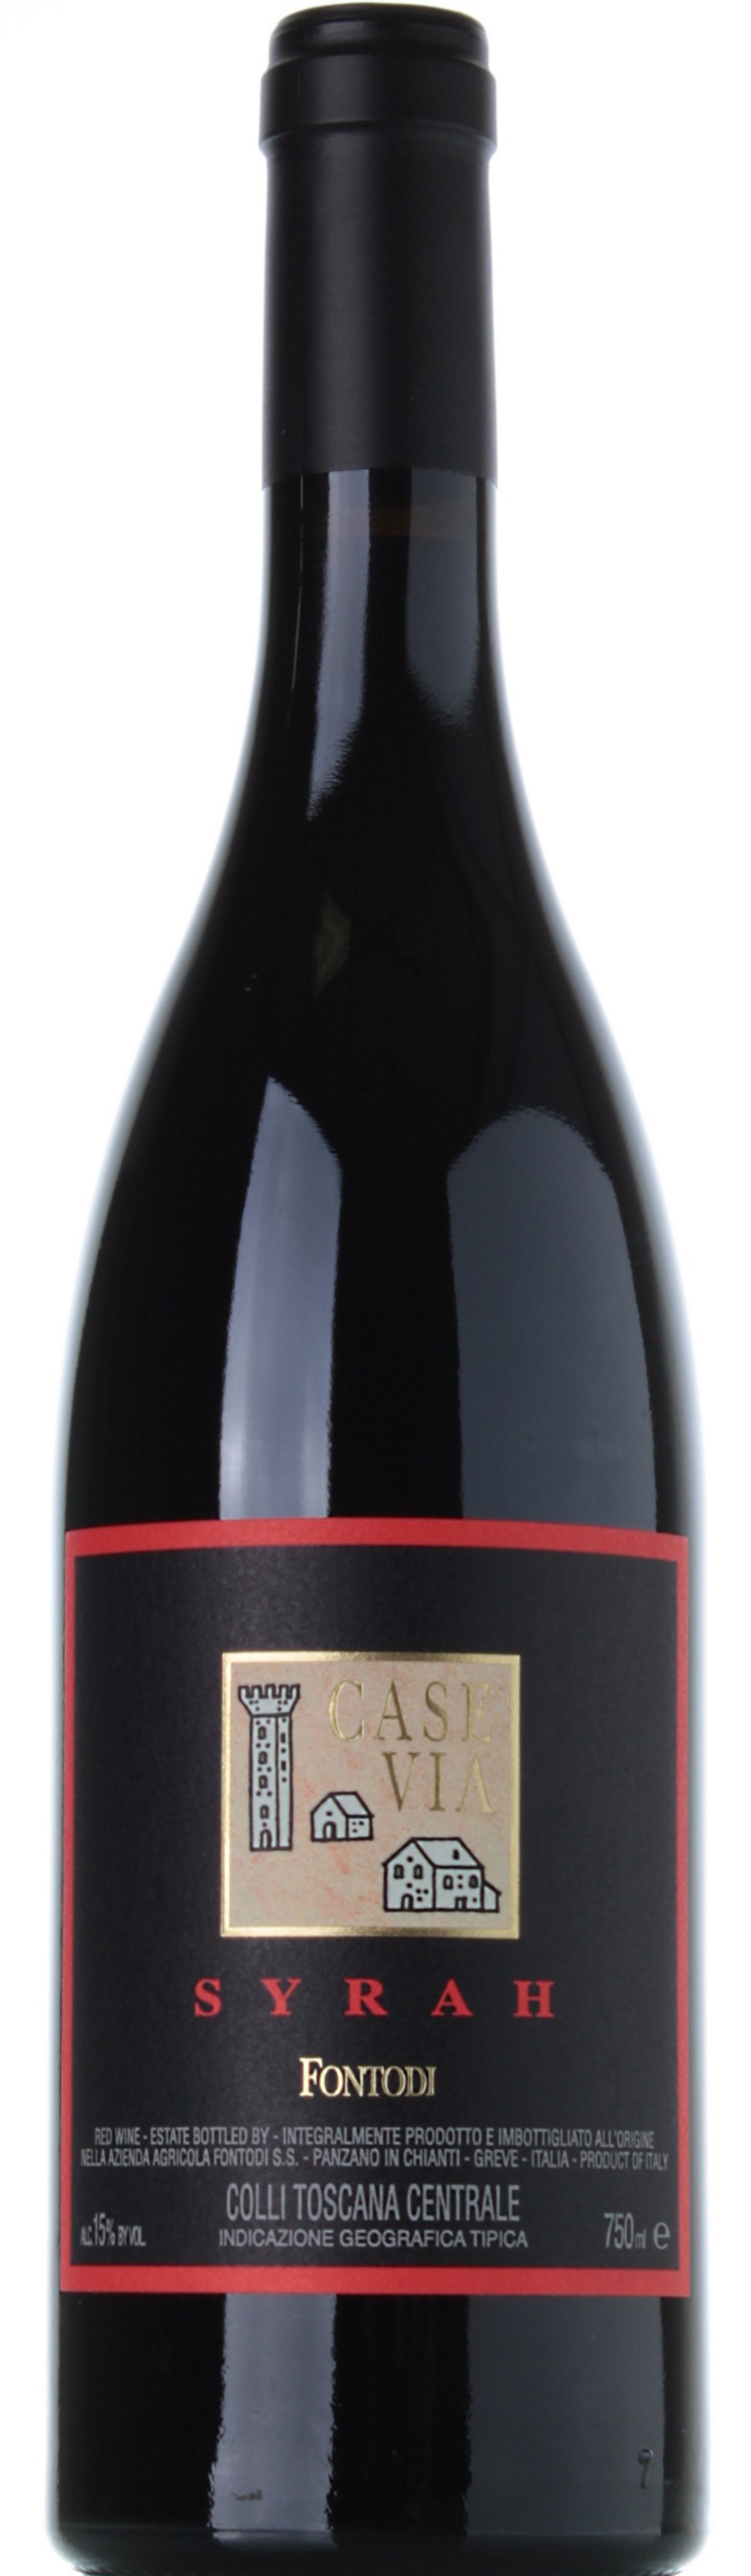 FONTODI SYRAH CASE VIA 2011